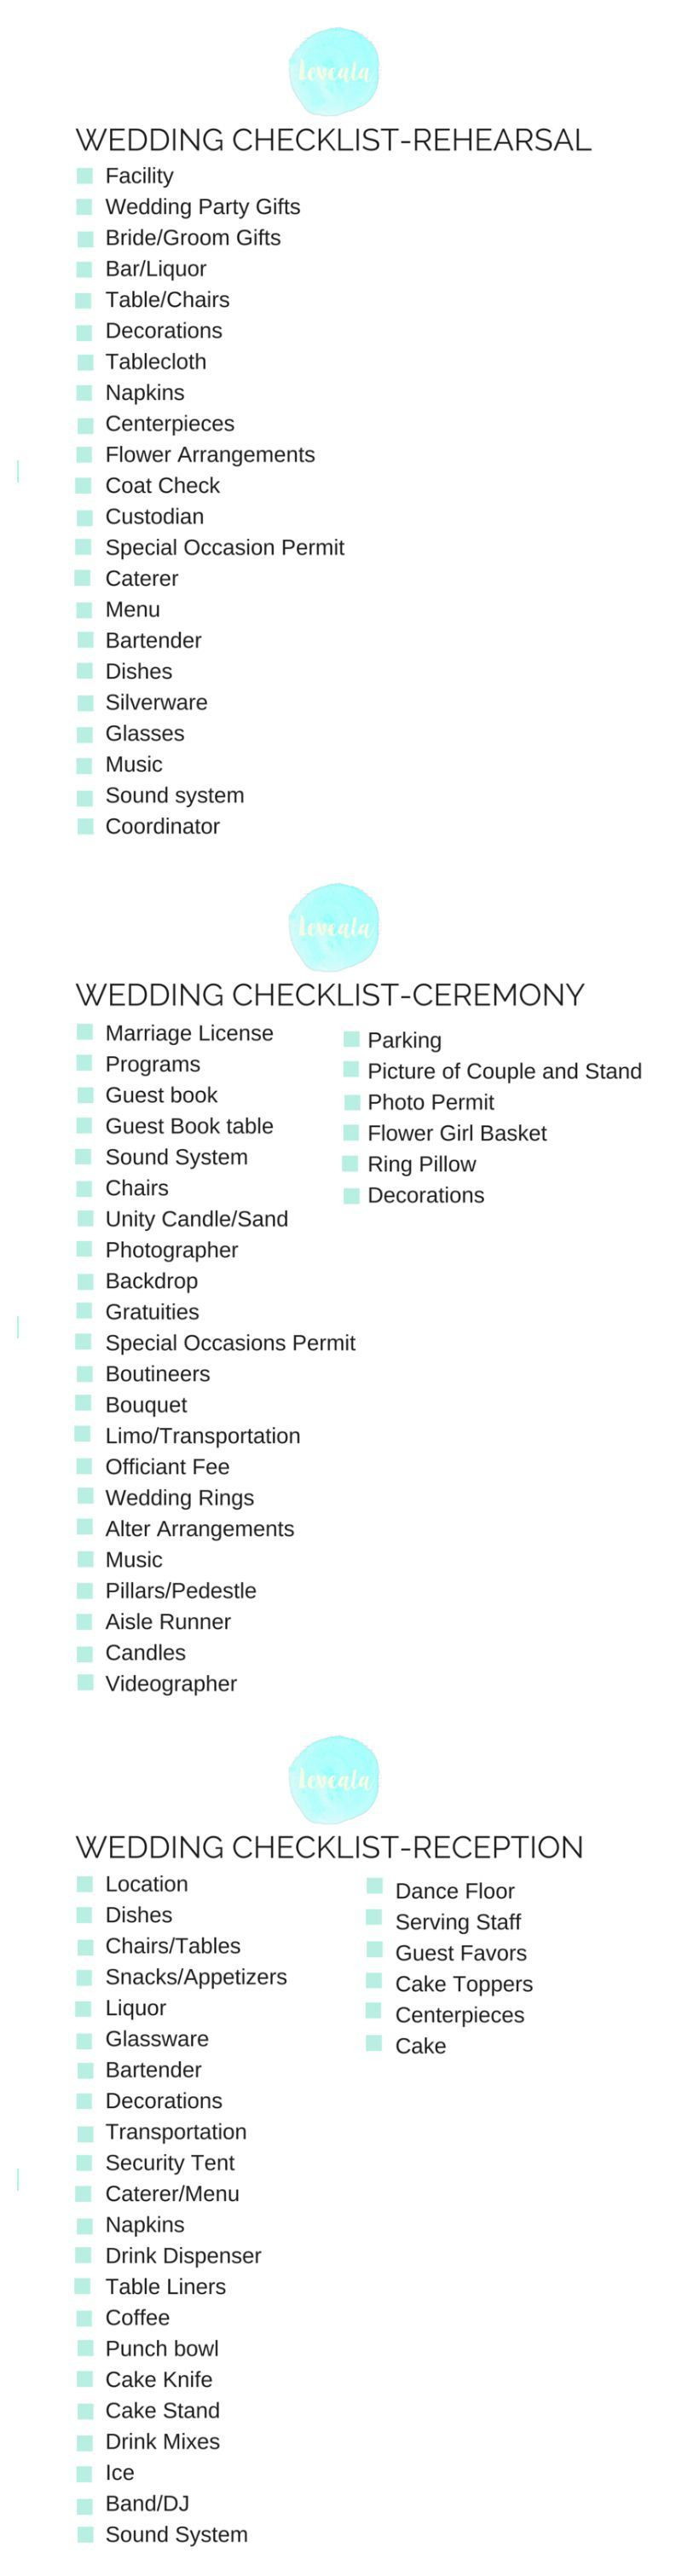 wedding checklist free printable wedding checklist randomness